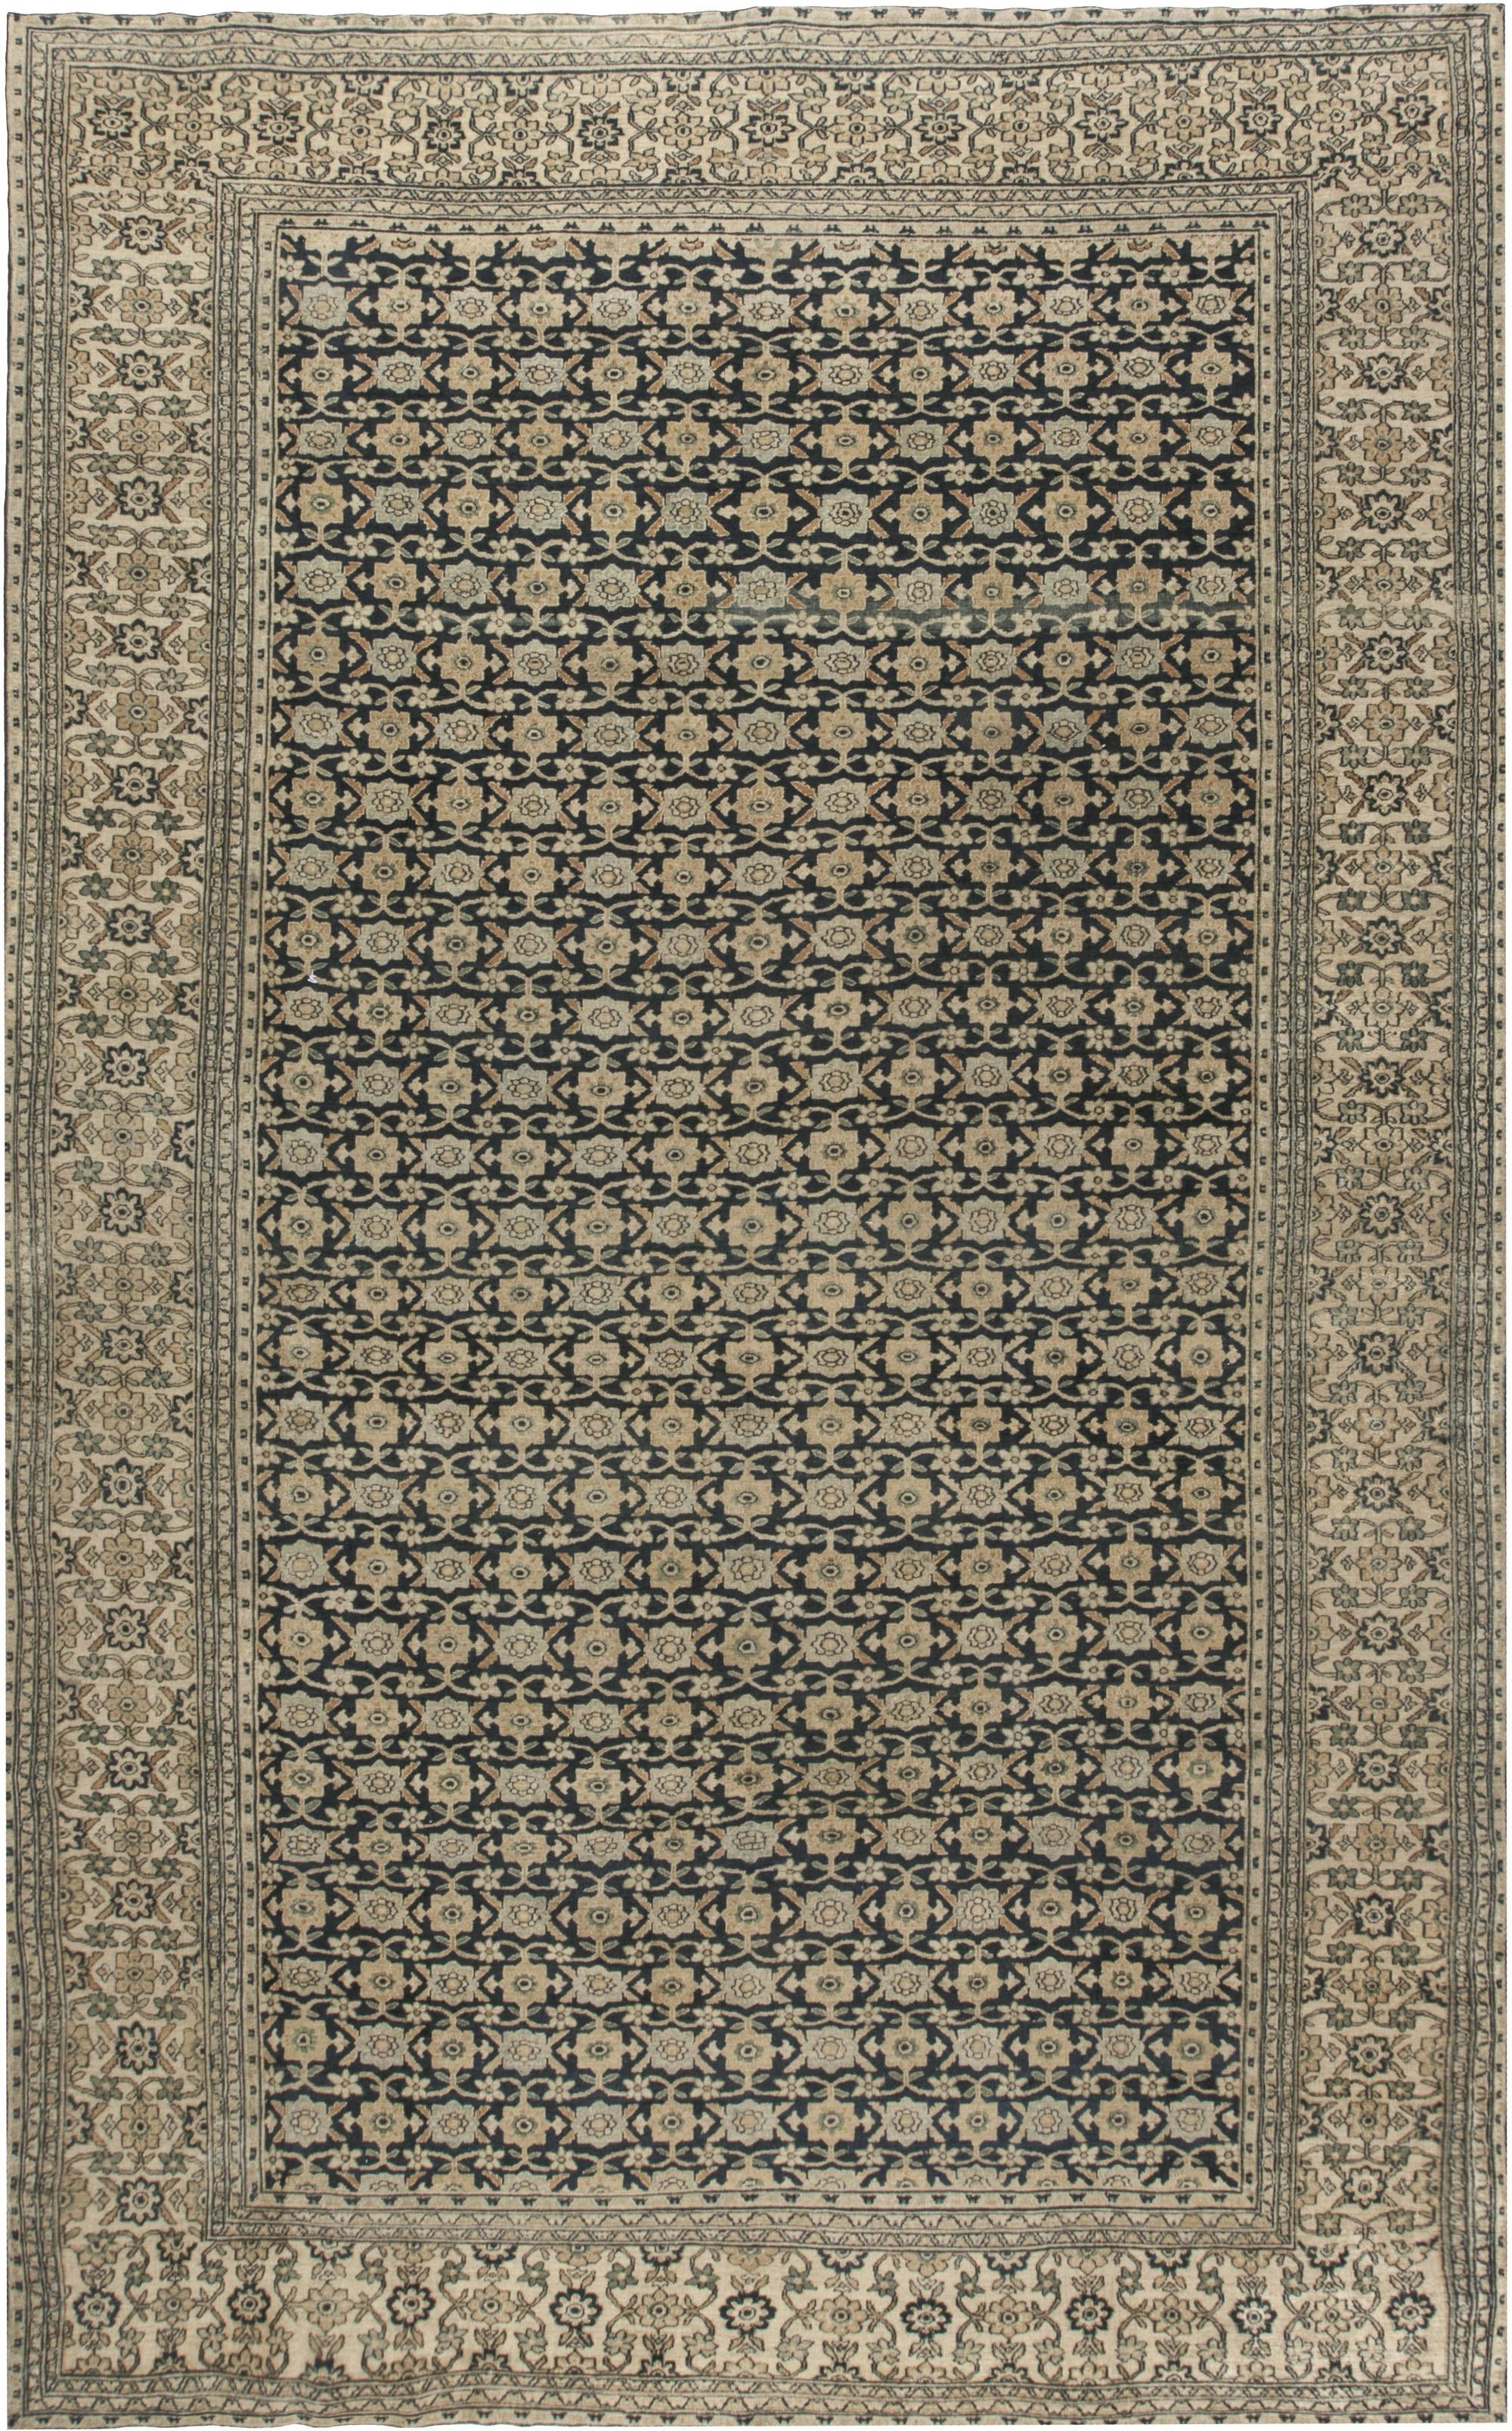 Antique Persian Meshad Rug Rugs Antiques Rugs On Carpet